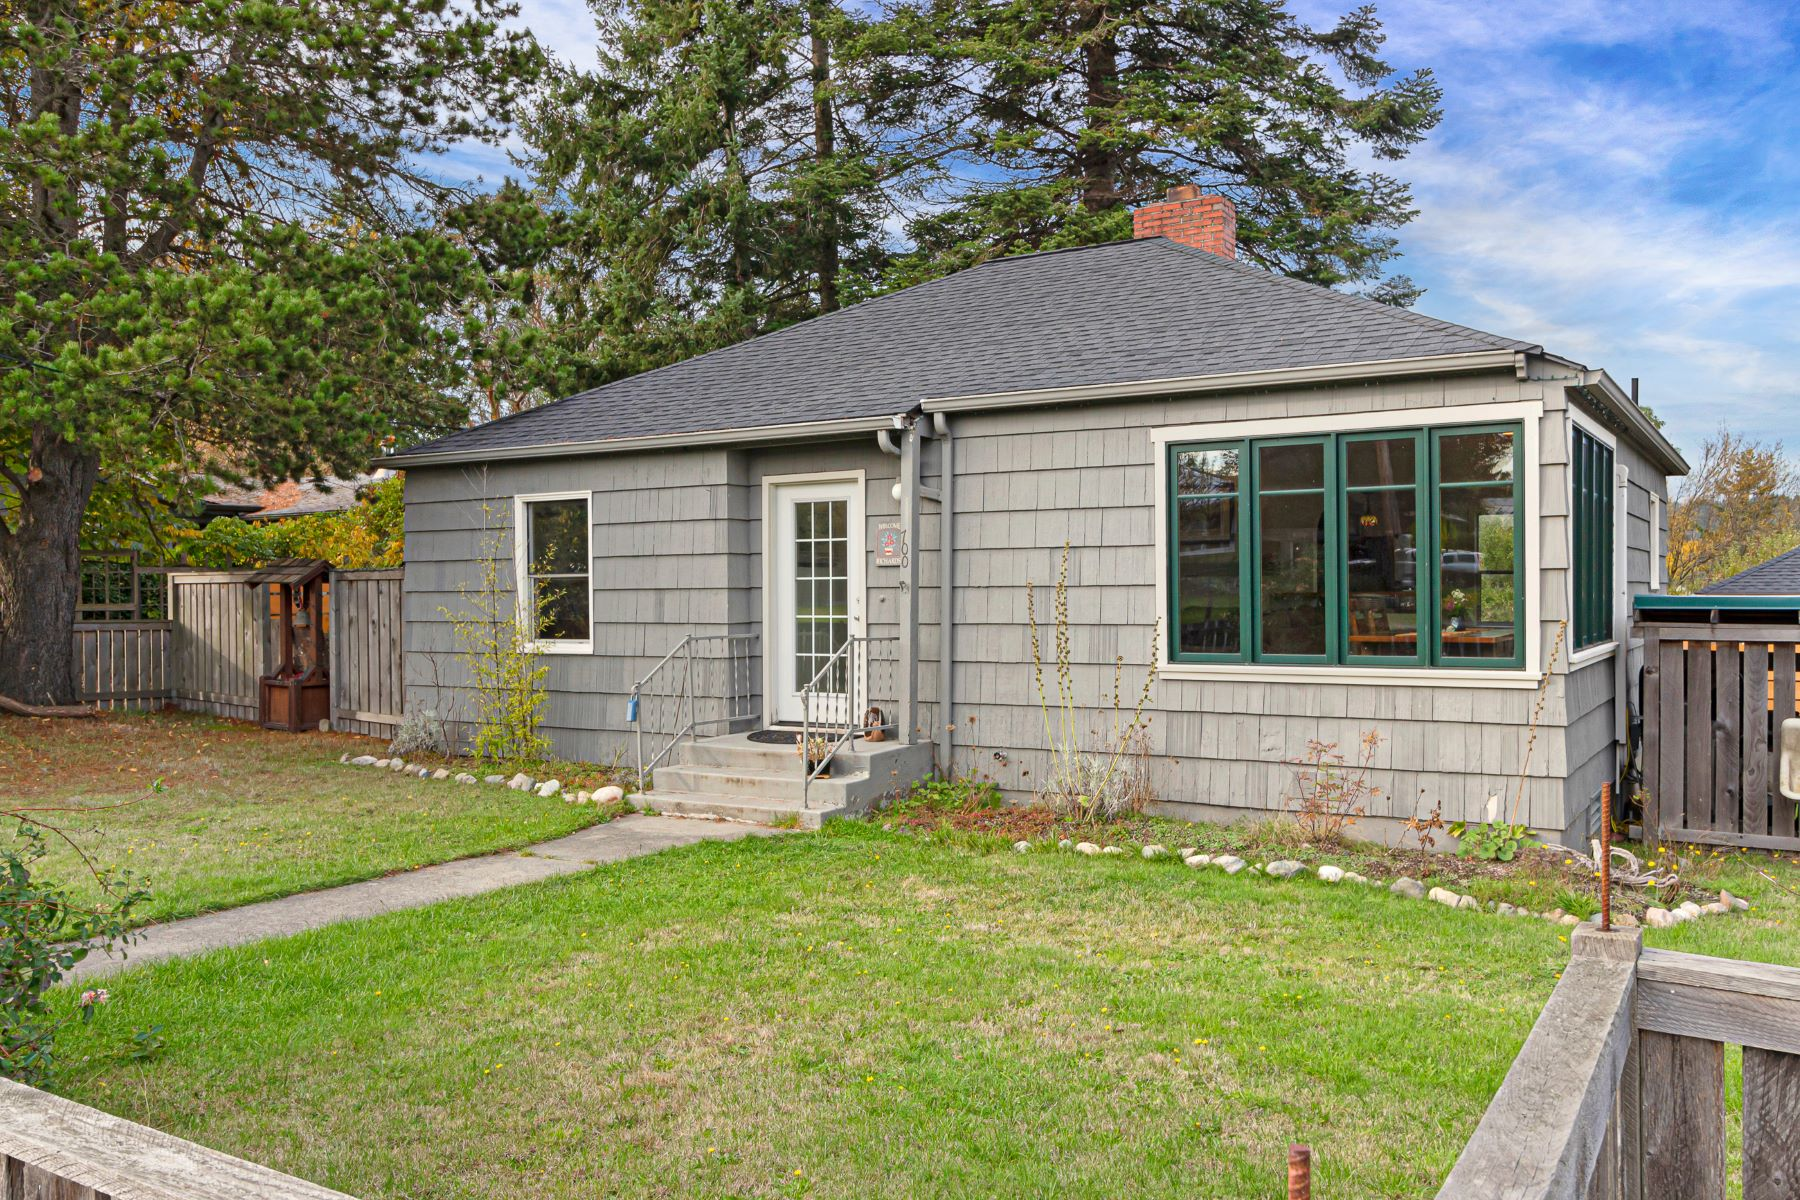 Single Family Homes for Sale at In Town Cape Cod Charmer 700 Park Street Friday Harbor, Washington 98250 United States